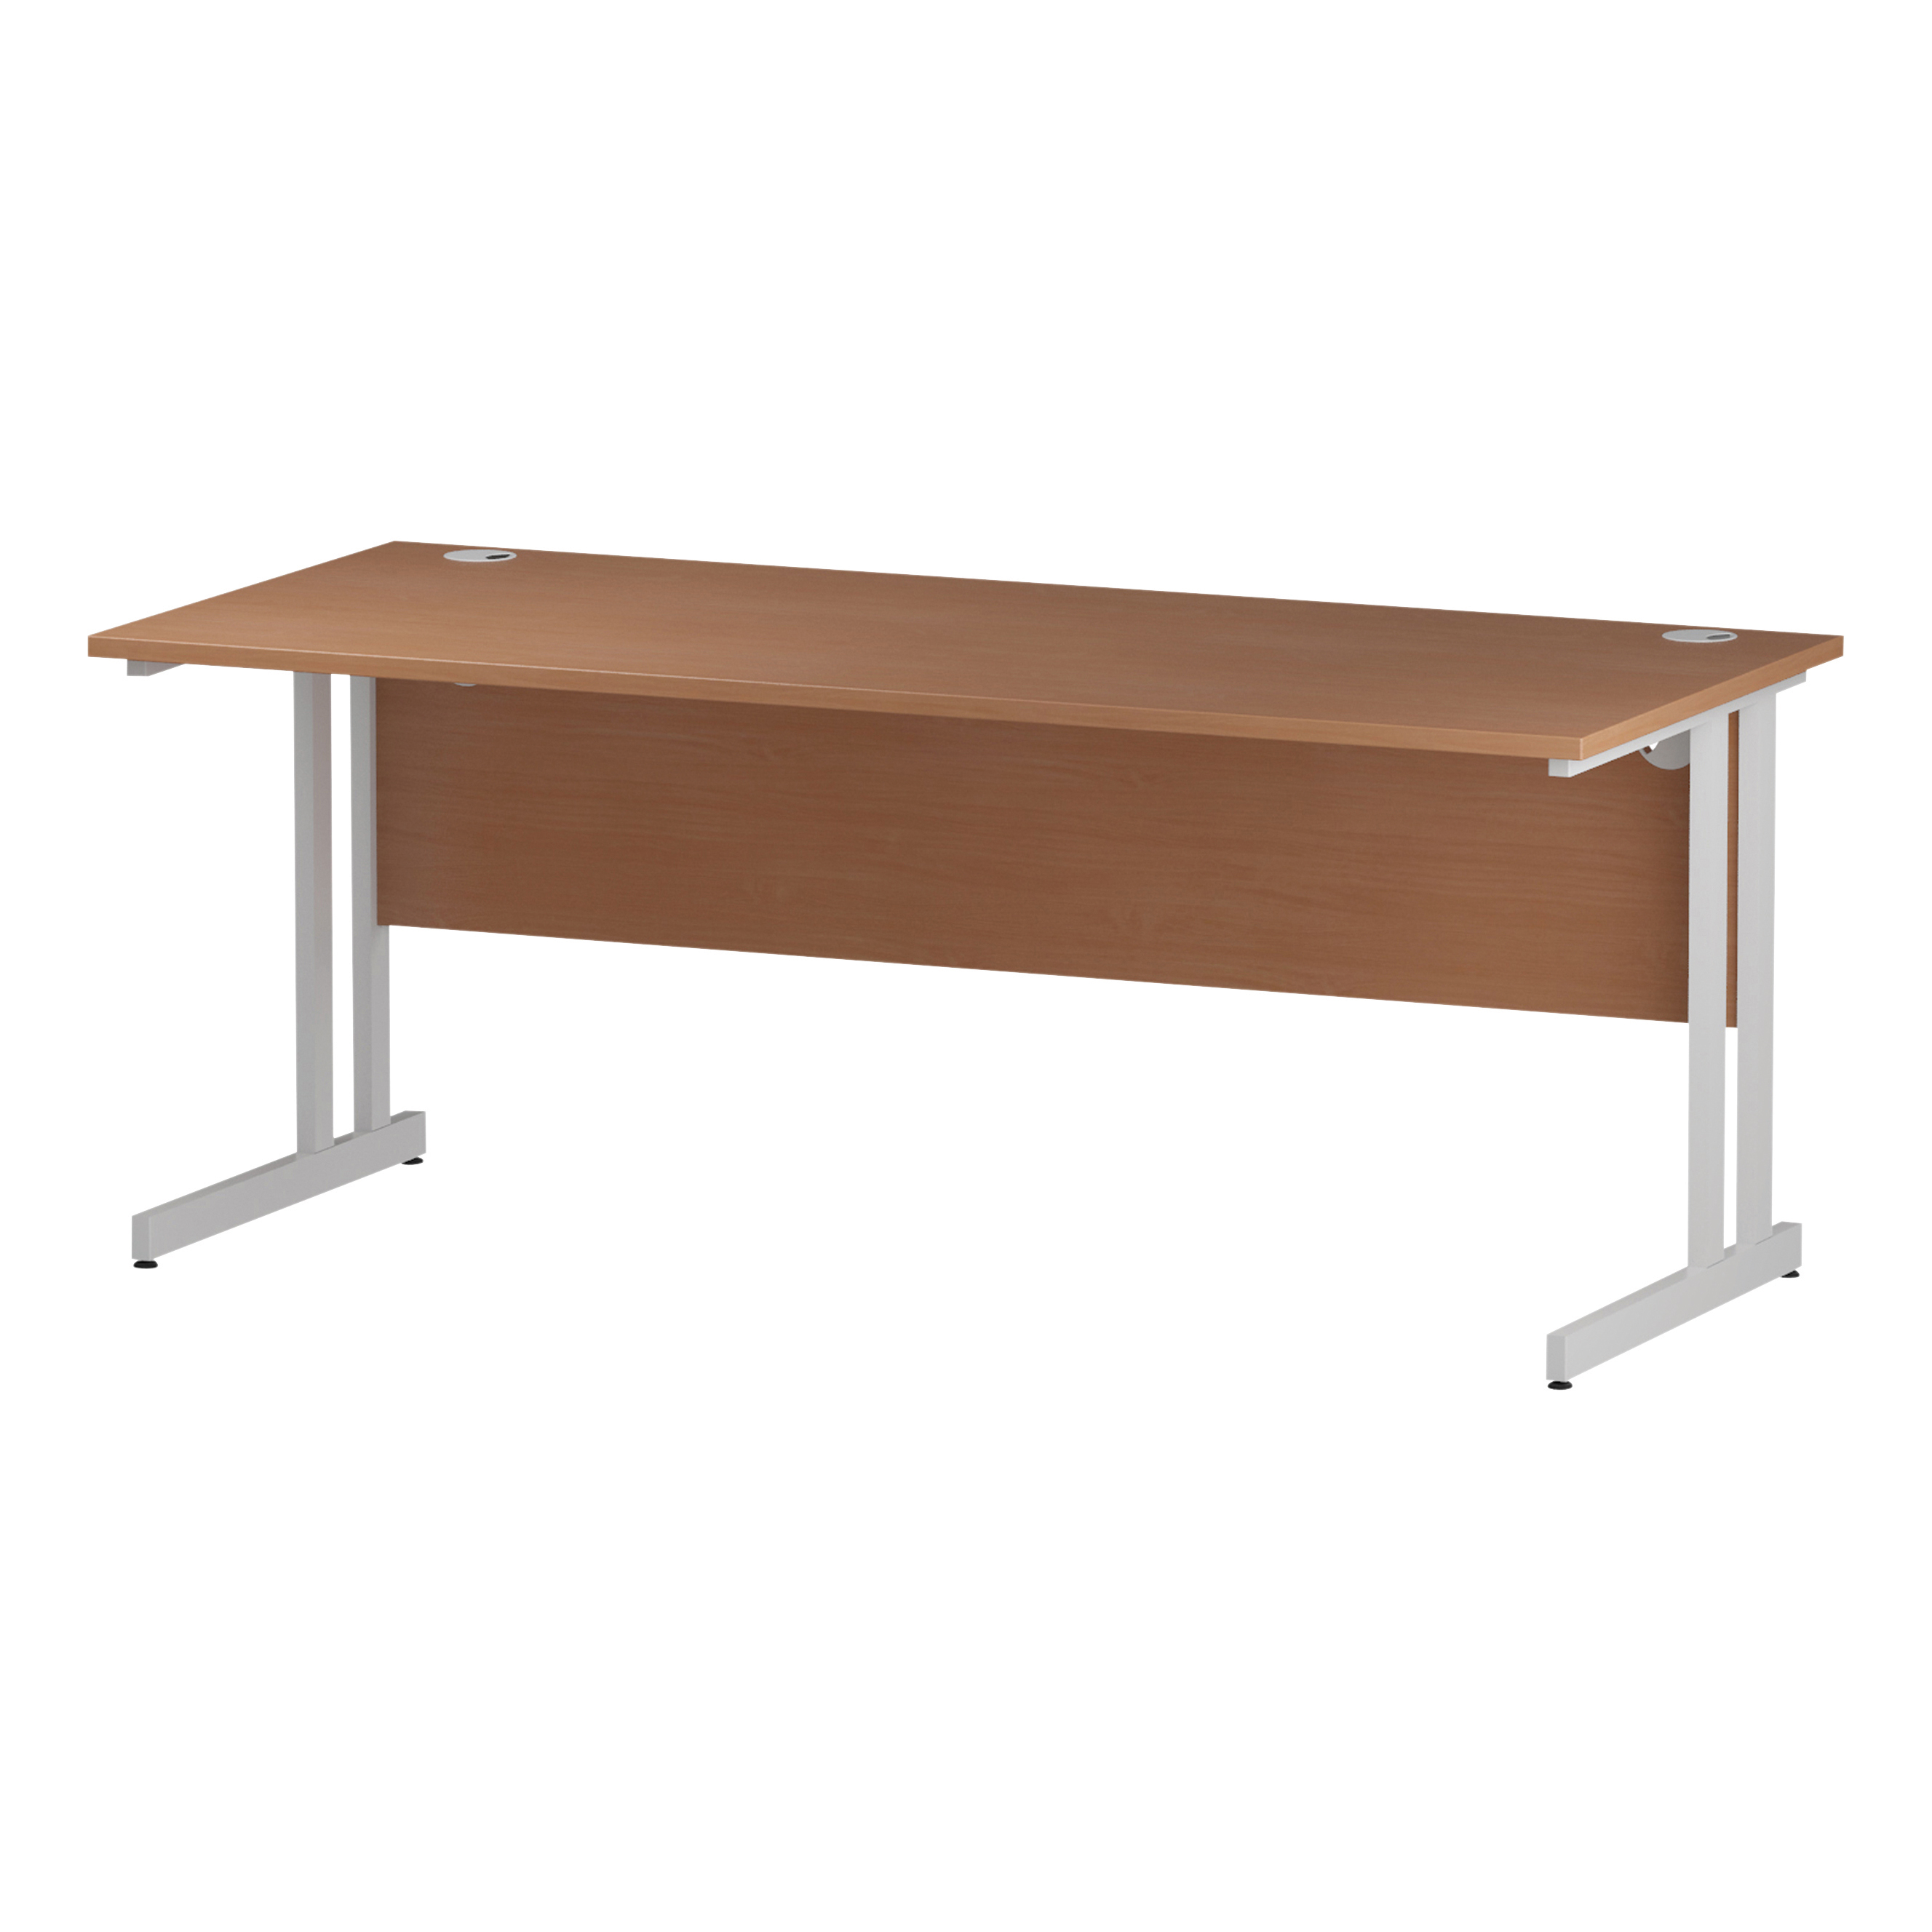 Trexus Rectangular Desk White Cantilever Leg 1800x800mm Beech Ref I001677